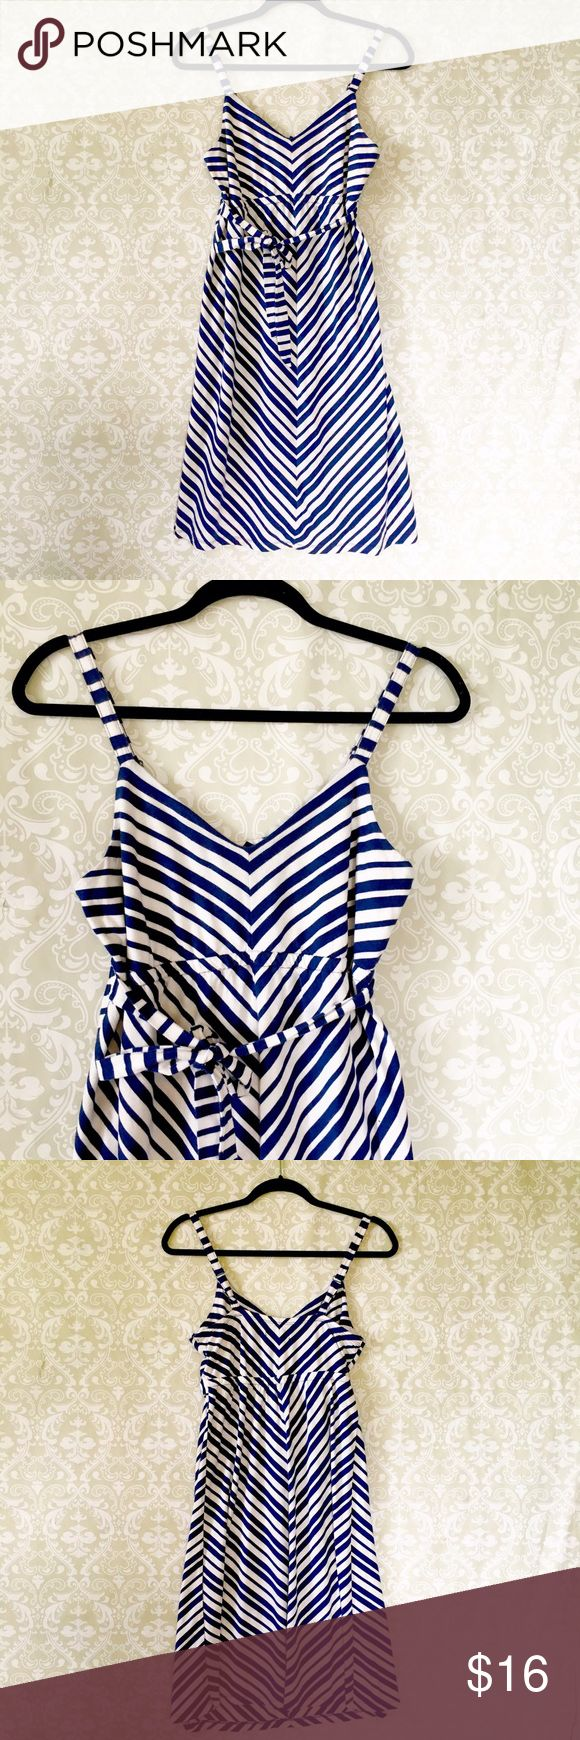 Maternity chevron dress Old Navy maternity dress in blue and white chevron pattern. Has a tie belt and adjustable shoulder straps. Knee length. Size XS. Old Navy Dresses